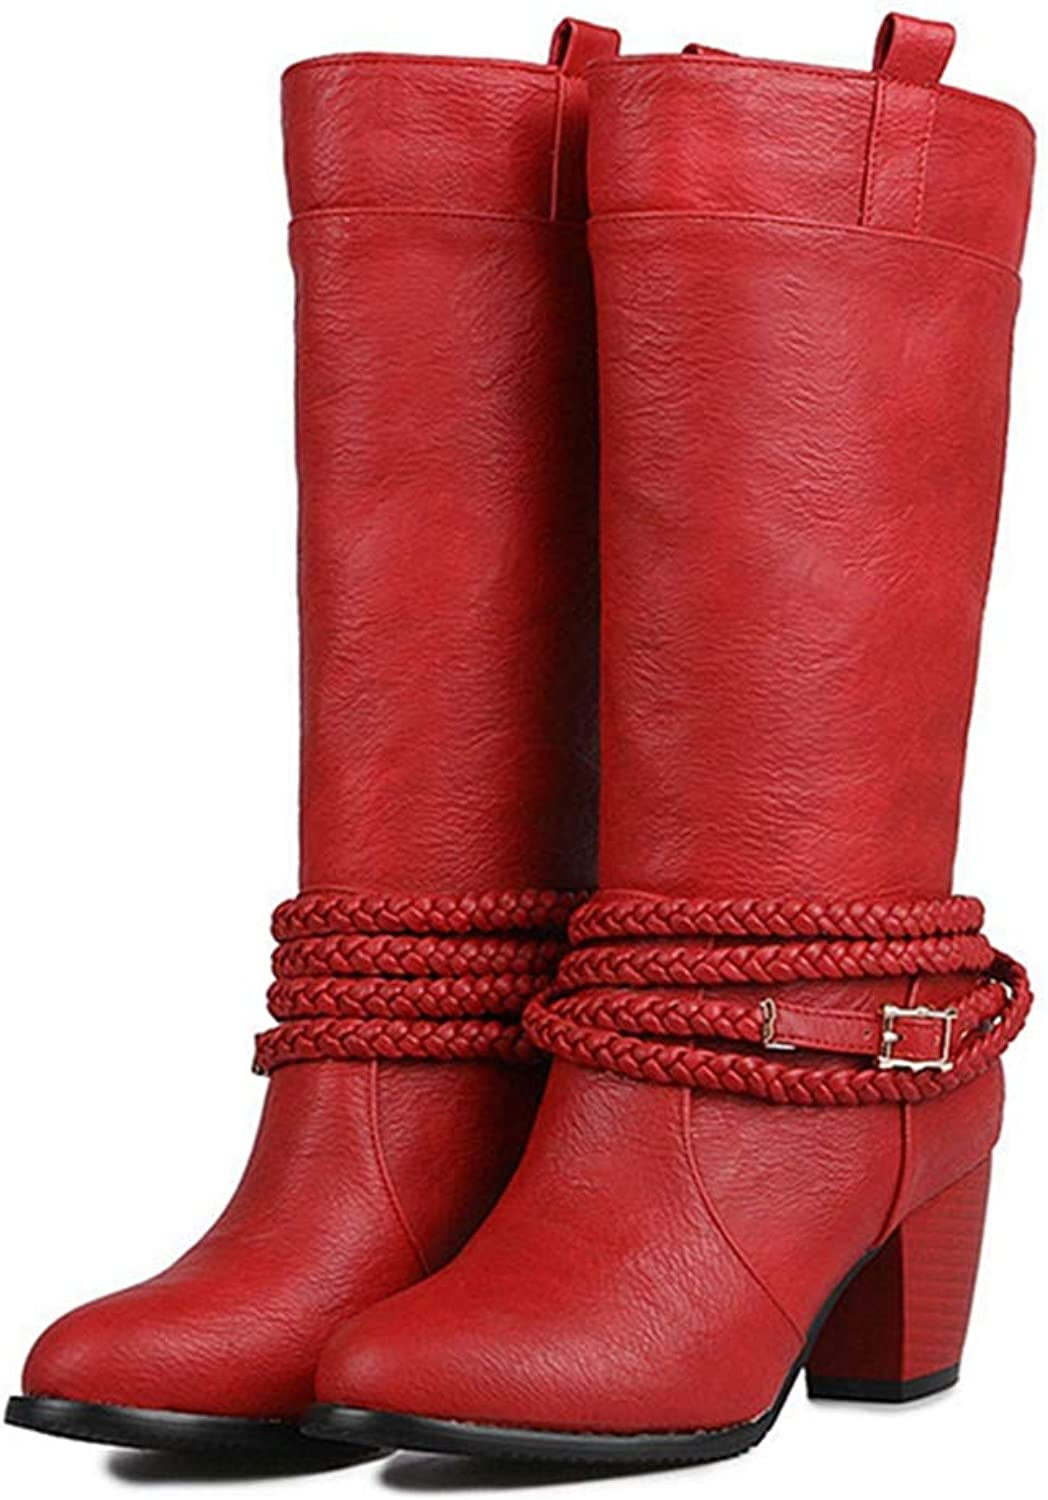 GIY Womens Cowboy Western Mid Calf Boots Buckle Strap Round Toe Stacked Mid Heel Wide Chelsea Riding Boots